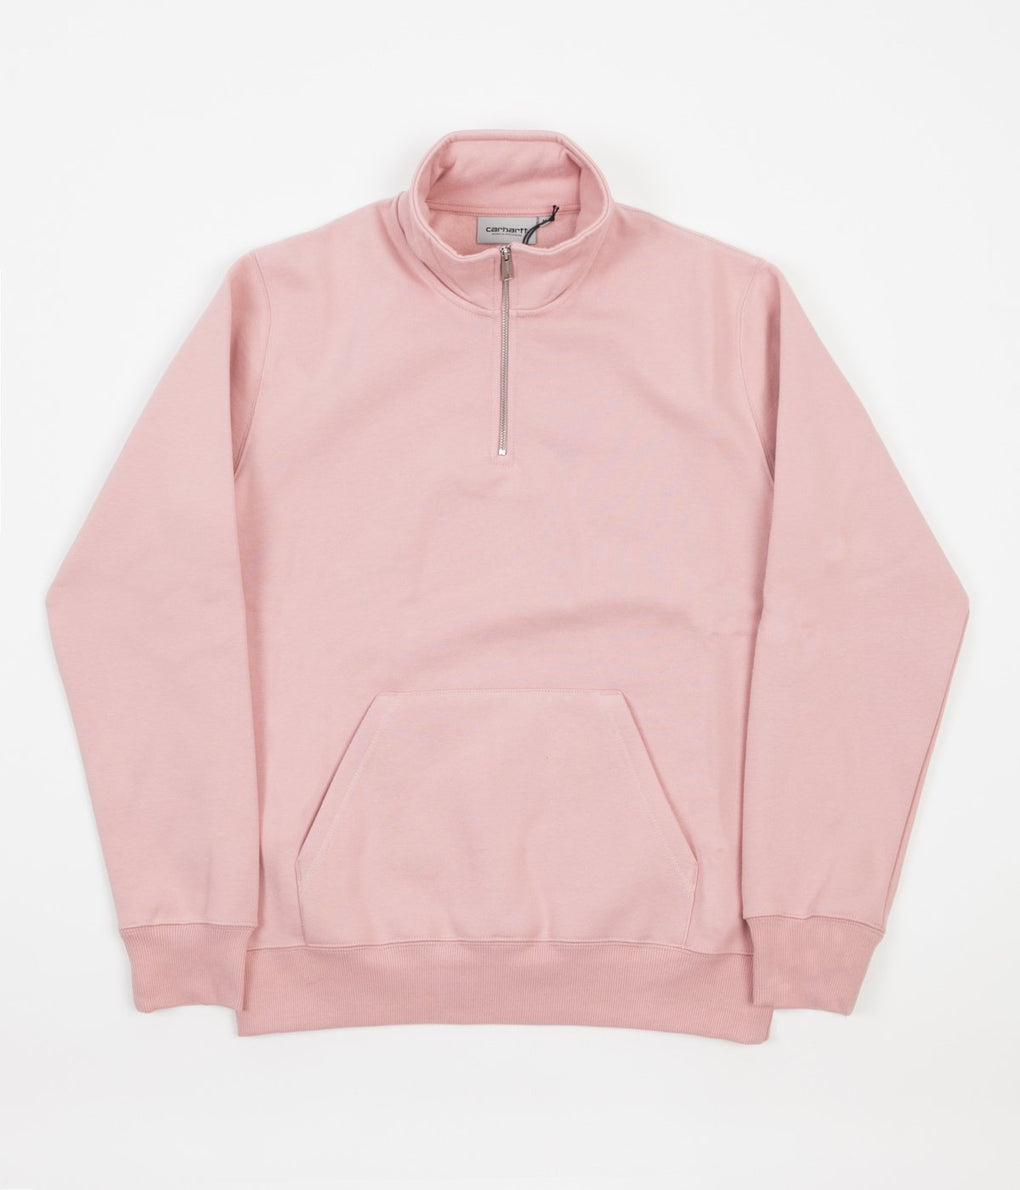 Carhartt Chase Zip Neck Sweatshirt - Soft Rose / Gold